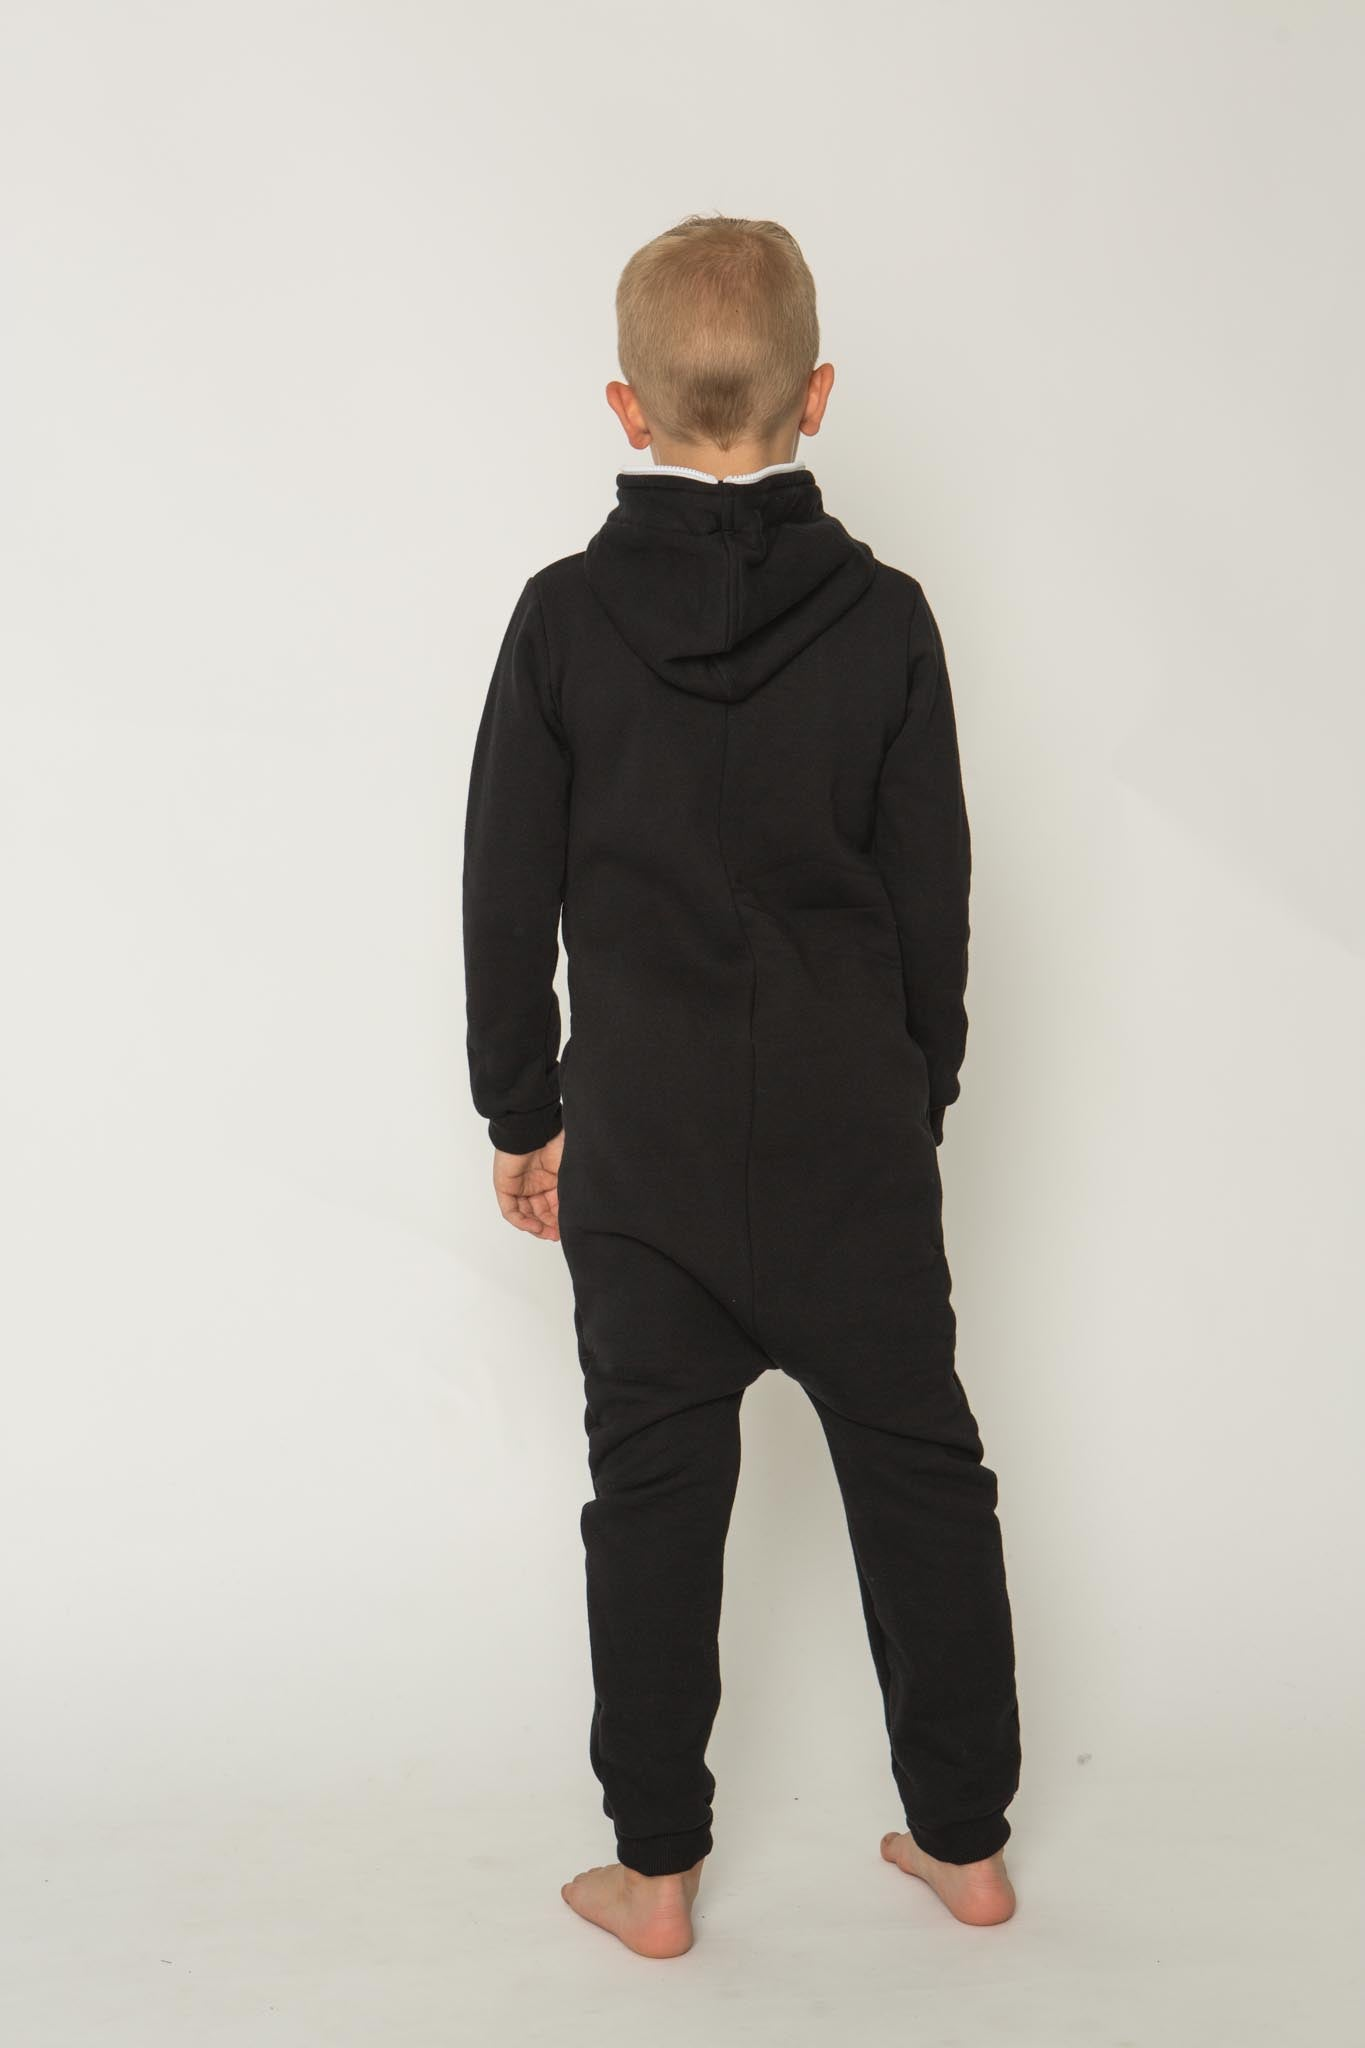 Sofa Killer black unisex kids onesie with black cuffs